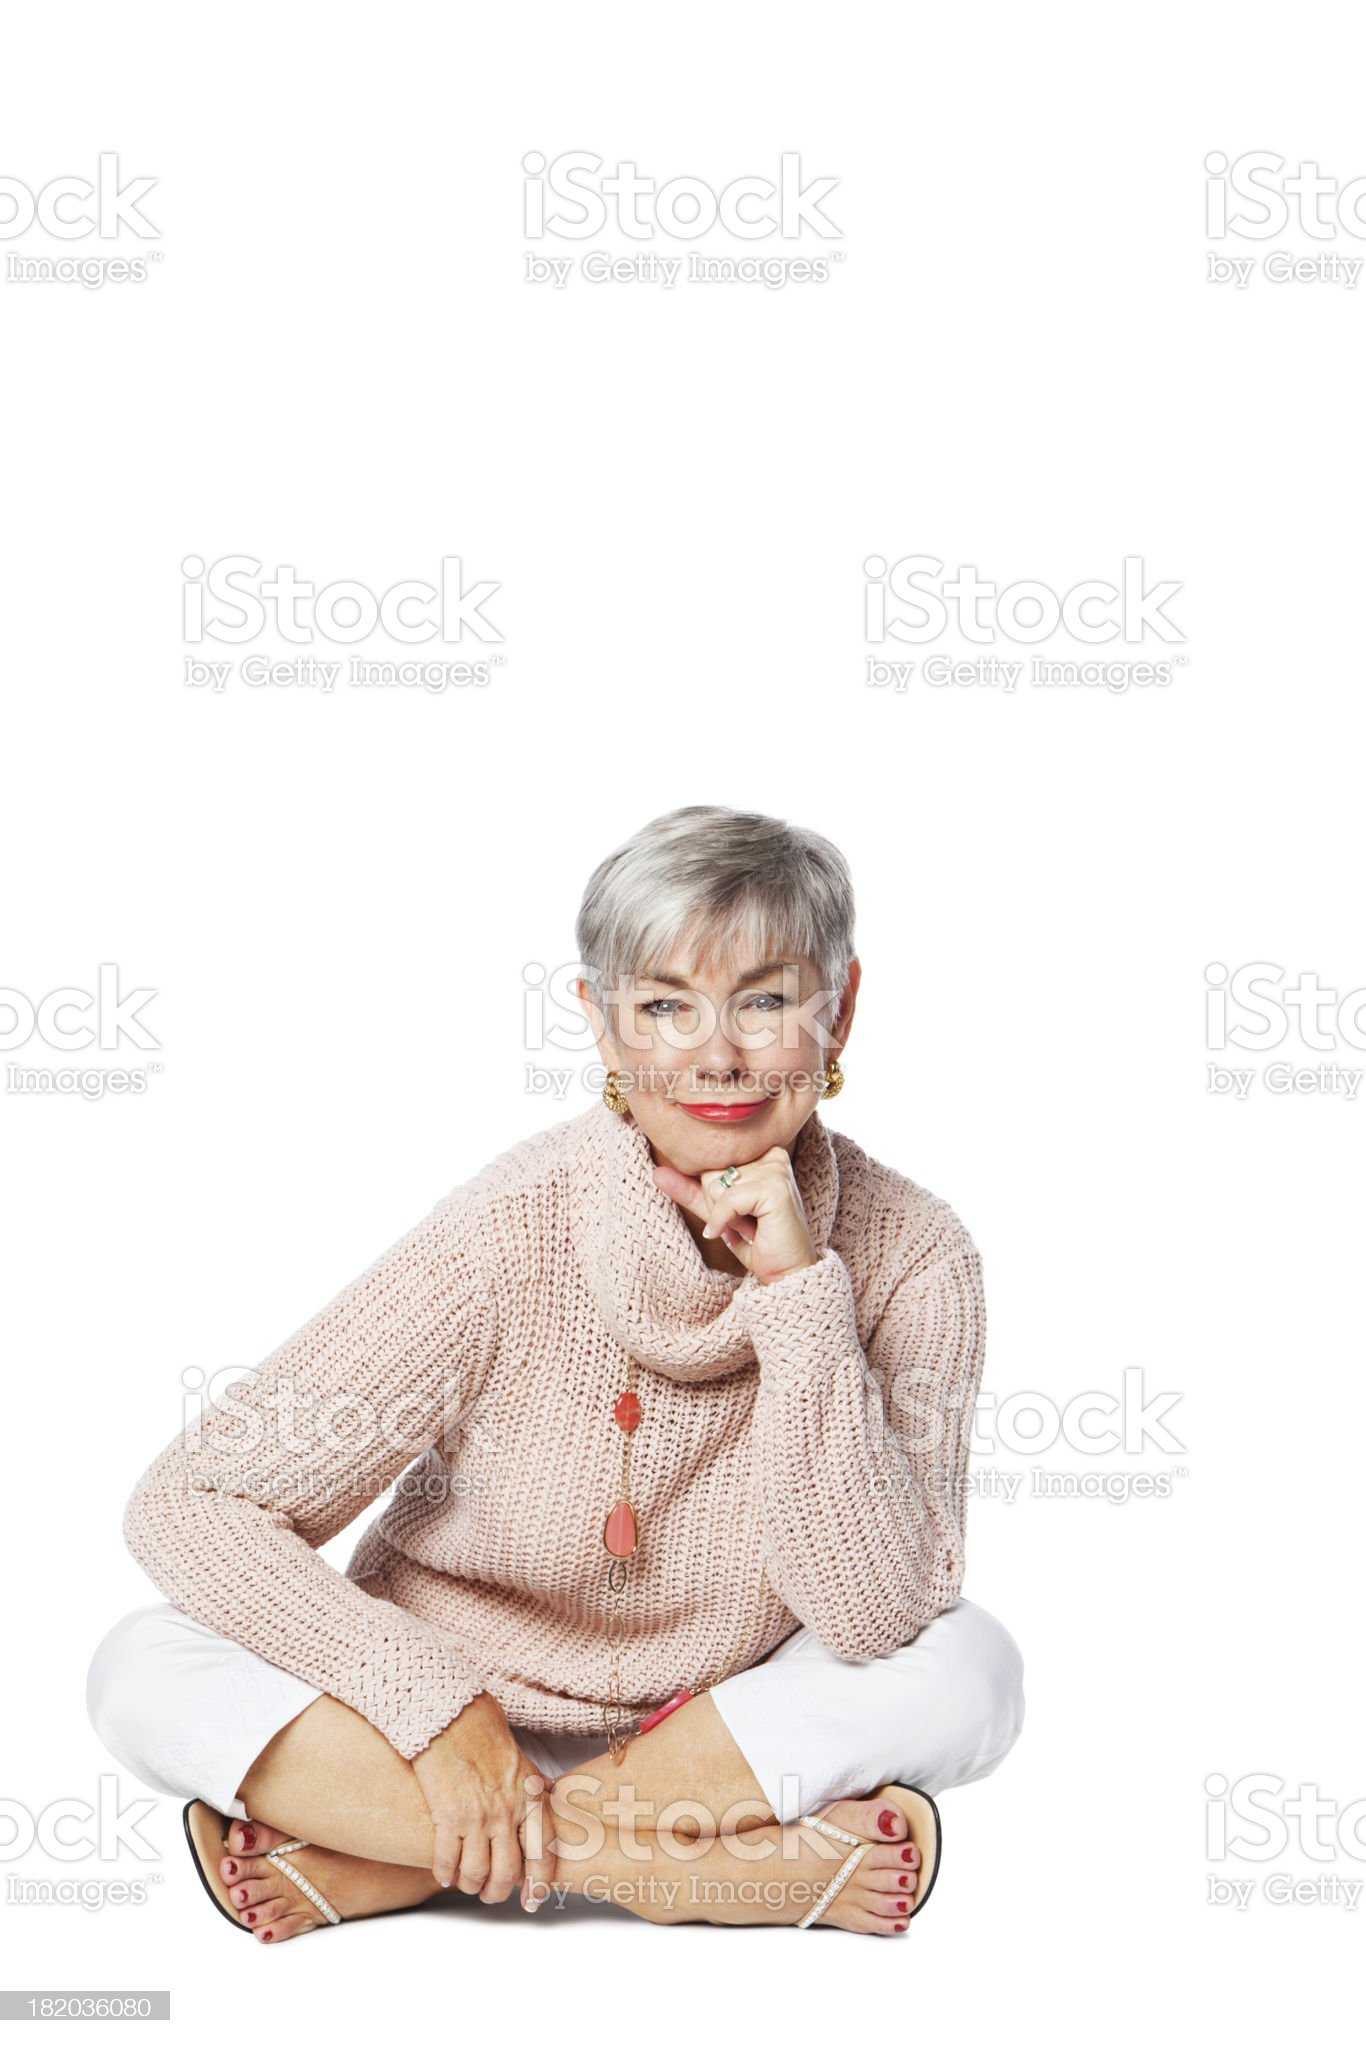 Relaxed Senior Woman Sitting On Floor royalty-free stock photo